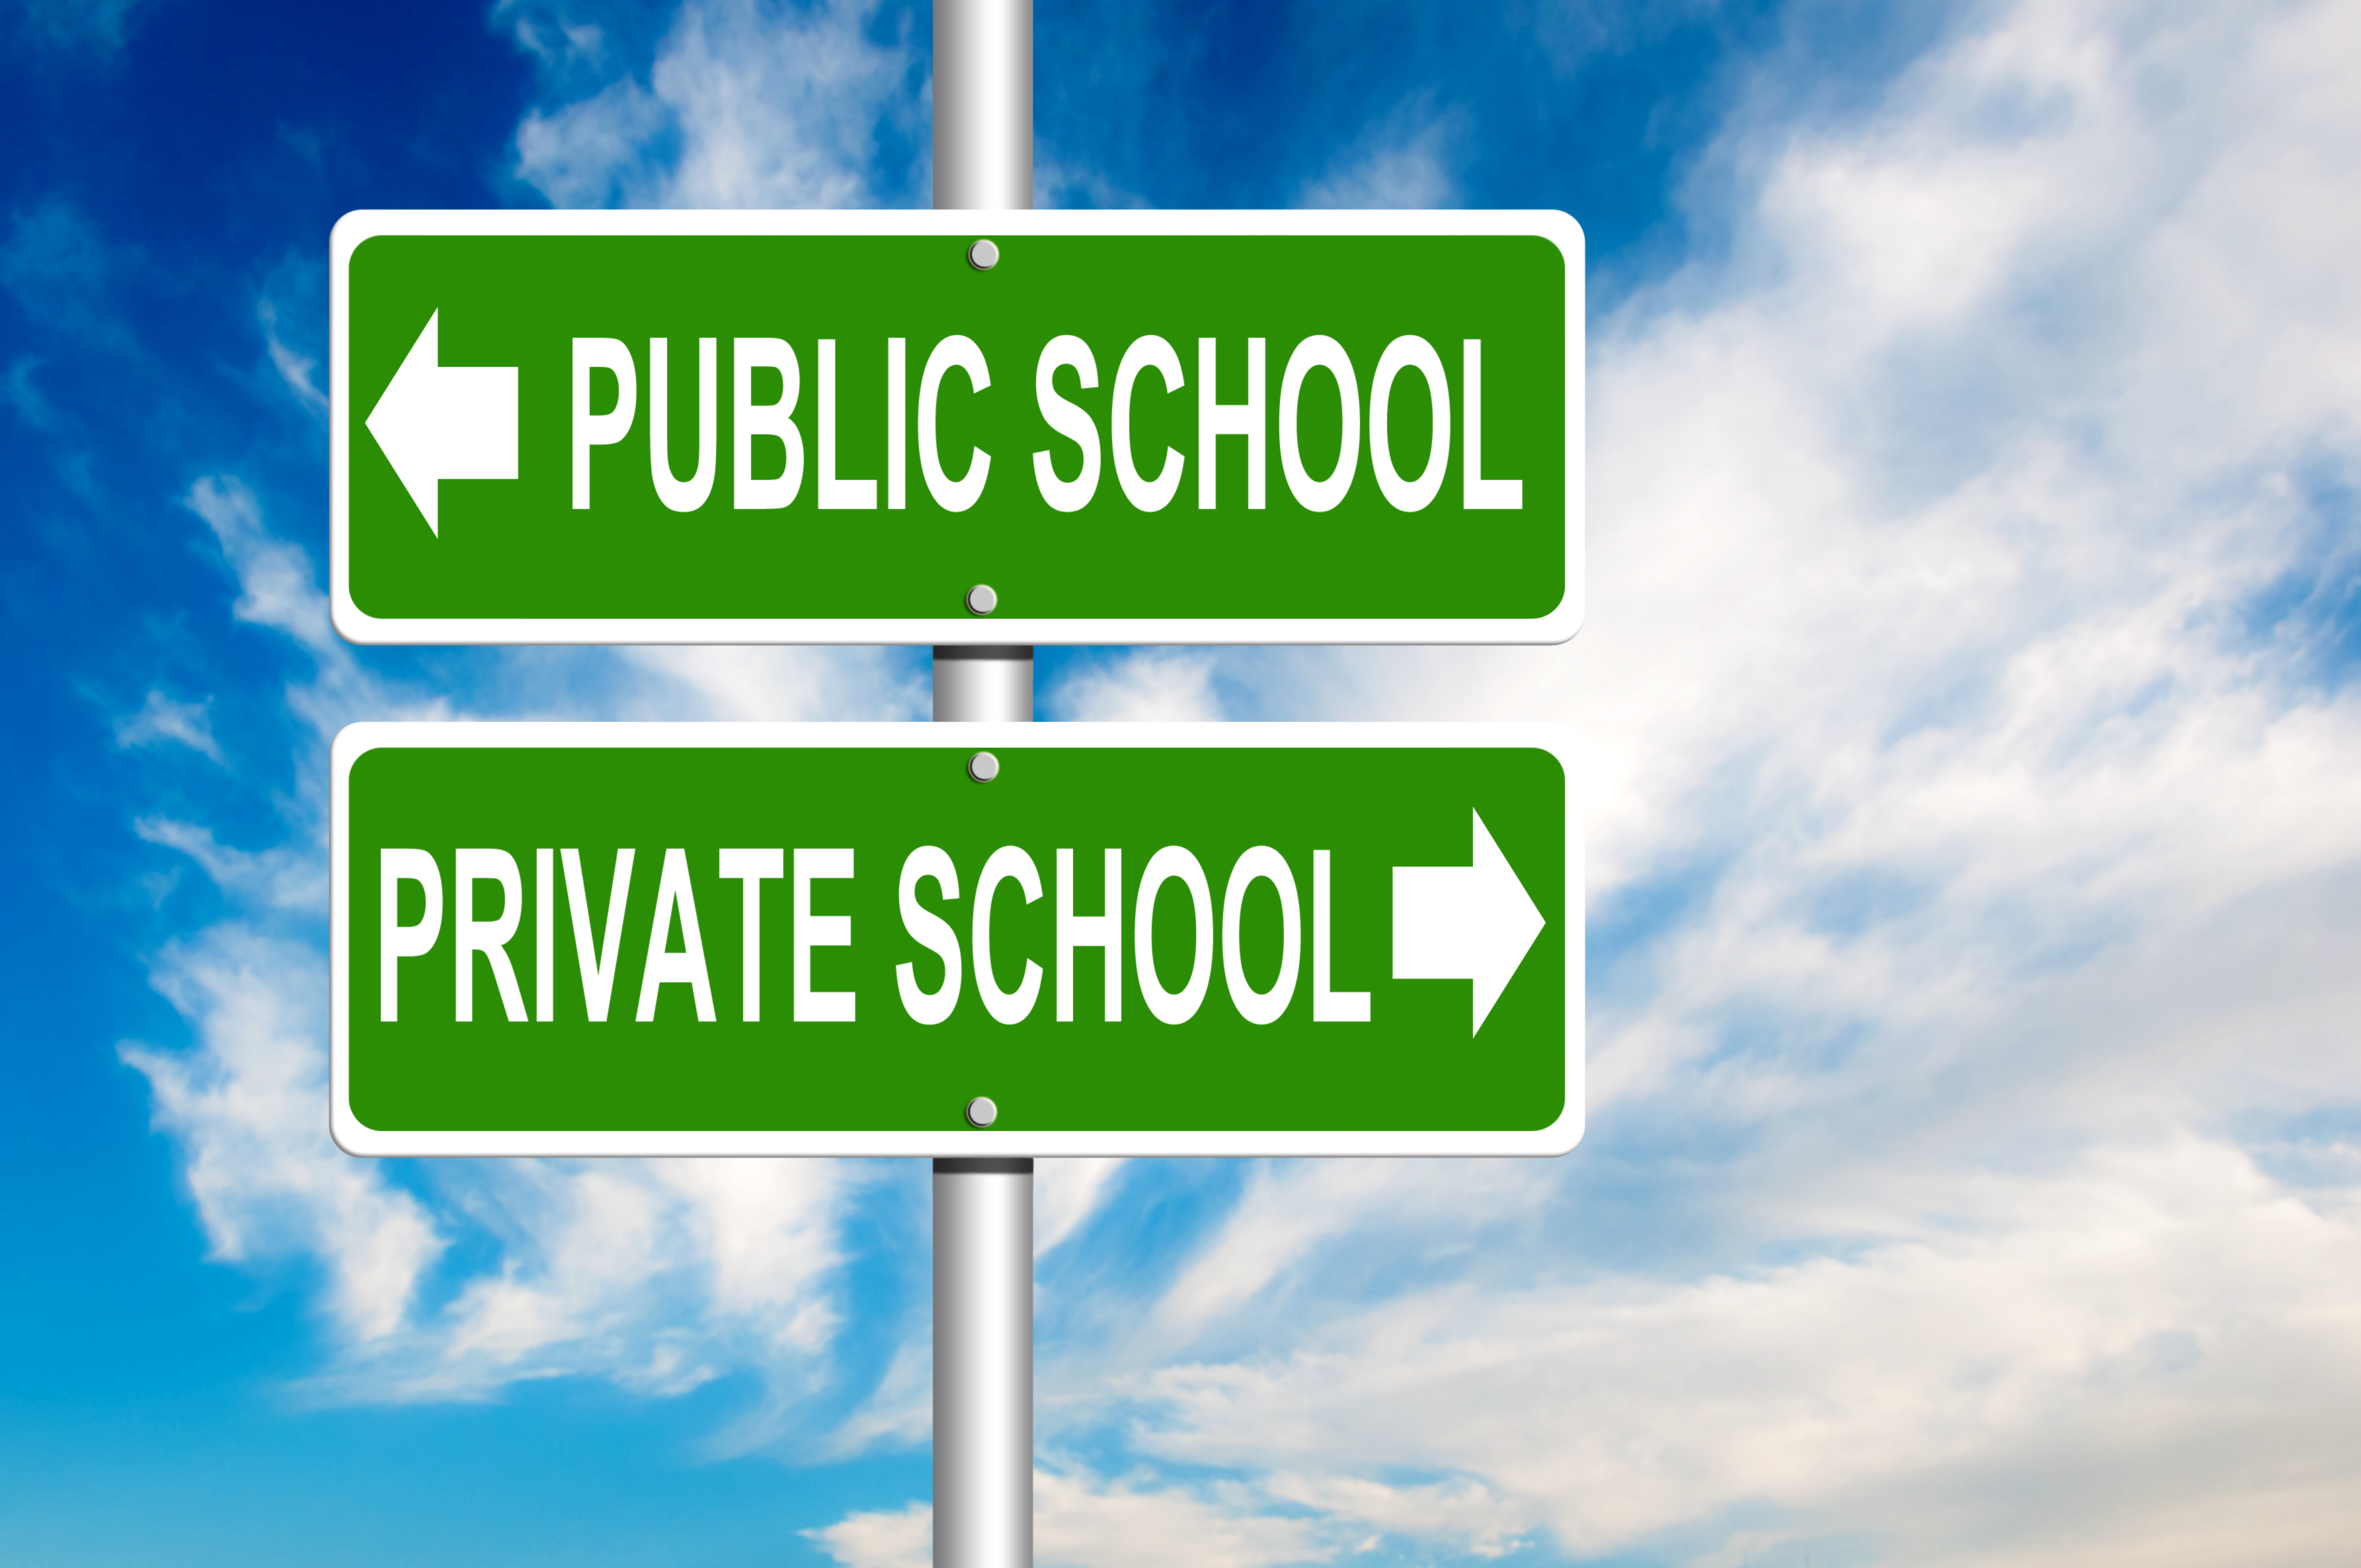 private vs public schools essay Public schools vs private schools essay 899 words | 4 pages public schools vs private schools a good education is an essential part of a child's development today, parents have a choice in their child's education and can evaluate both public and private schools.